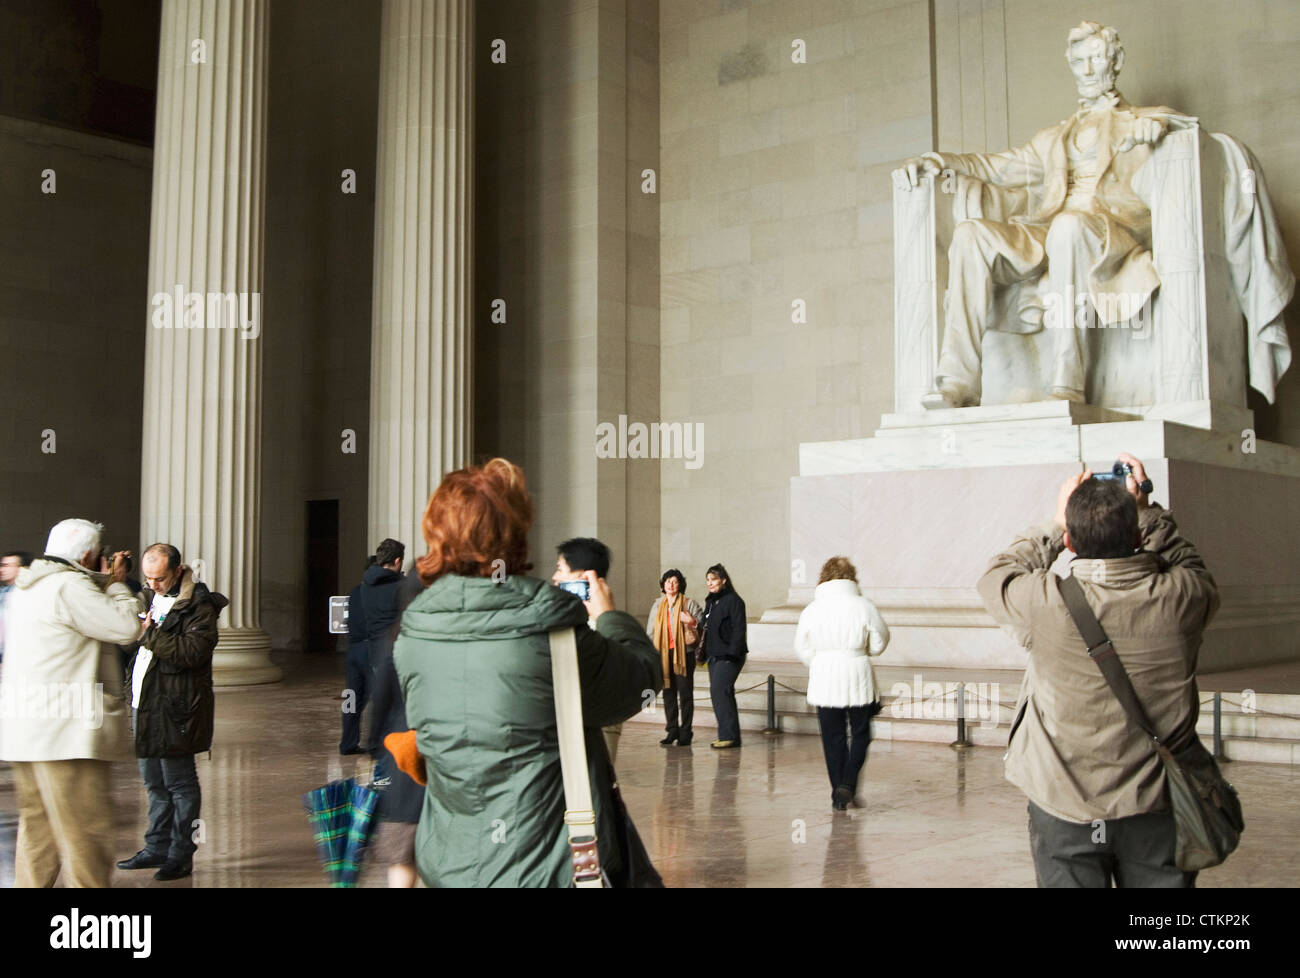 A group of tourists surrounding the Lincoln Memorial statue in Washington DC. Stock Photo